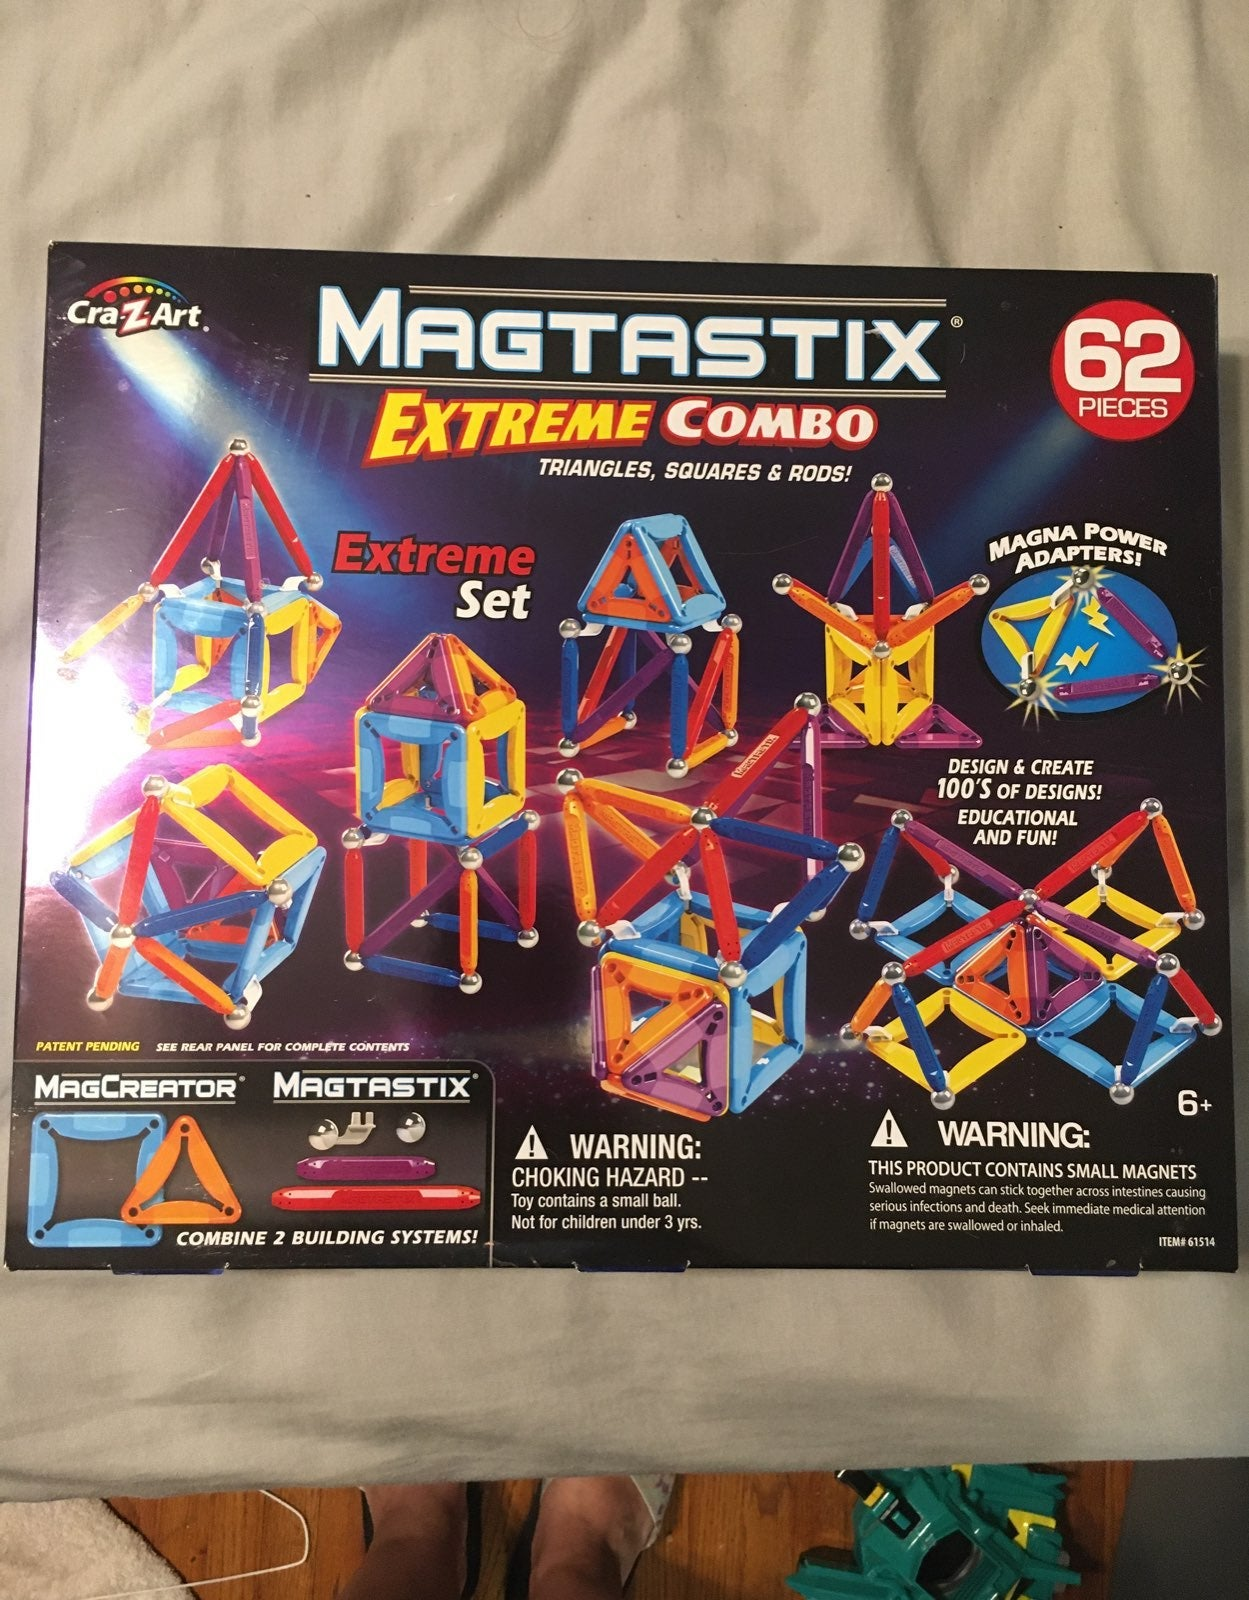 Magtastix 62 piece extreme combo